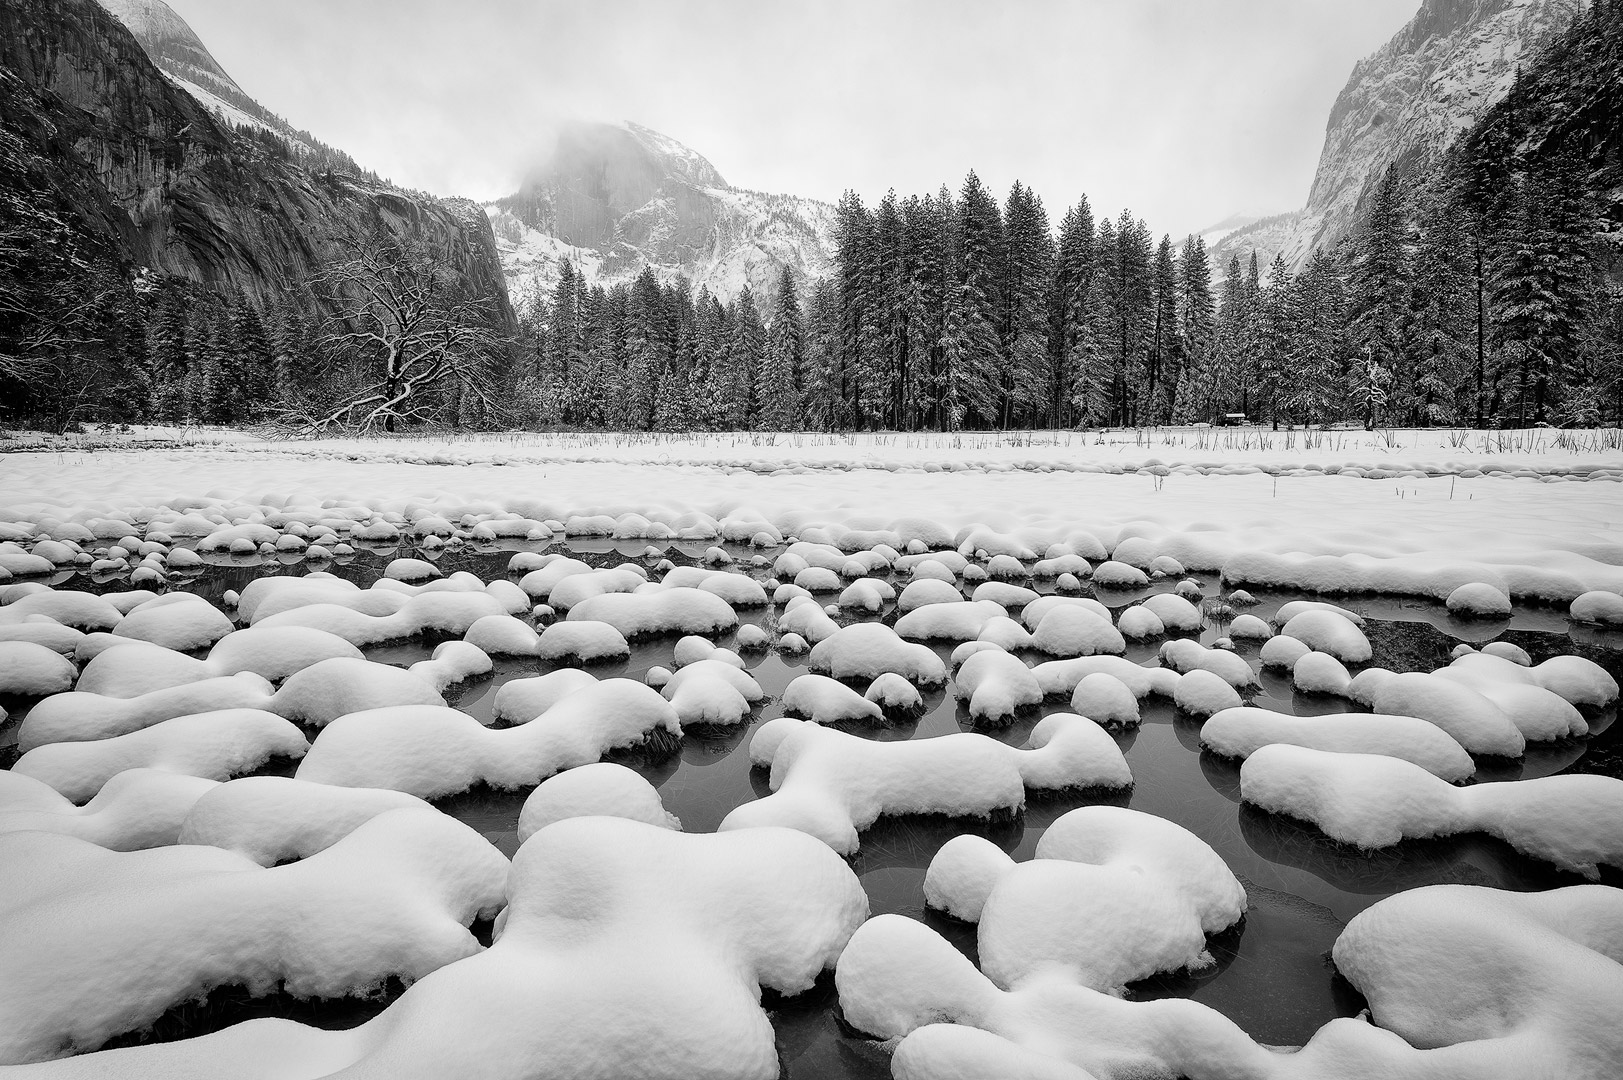 Yosemite, National Park, California, Winter, Landscape, Snow, Mountains, Waterfalls, Rivers, Vista, Iconic, Bridalveil Fall, El Capitan, Half Dome,  Tunnel View, Sequoias, Tuolumne, Mariposa, Glacier,, photo